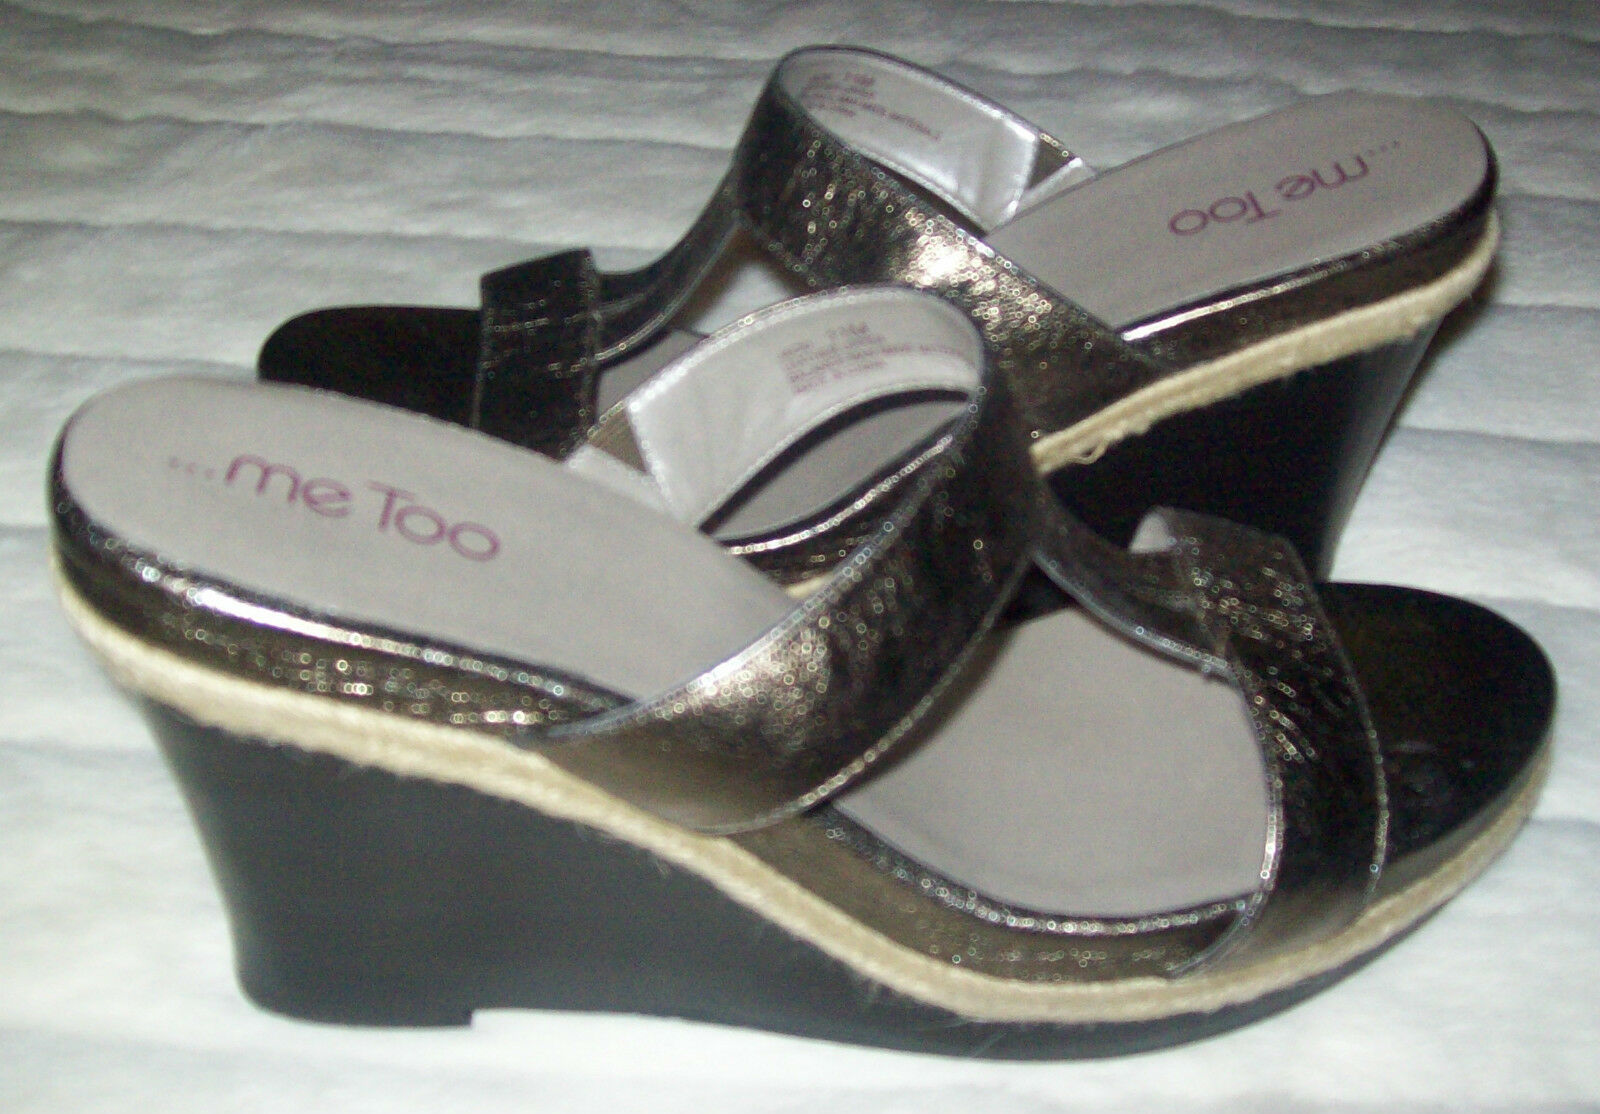 ME TOO  PEWTER  METALLIC  JACKI JACKI JACKI  LEATHER  WEDGE SIZE 11 M NEW e5c597